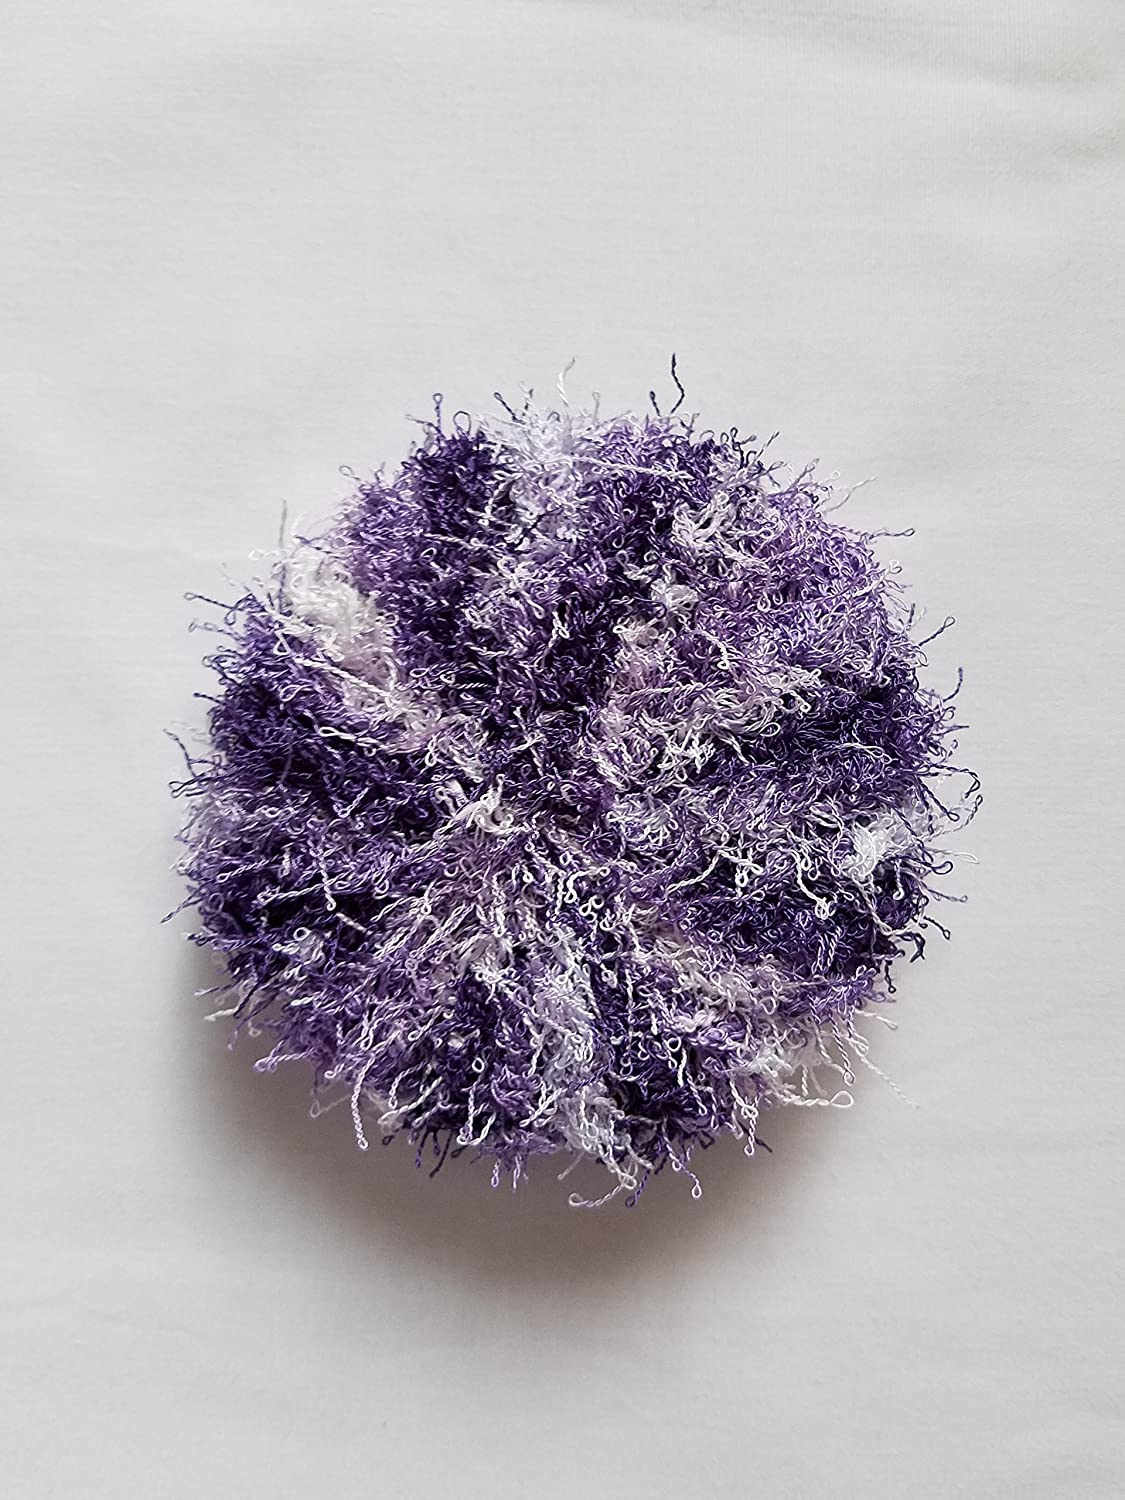 Eco-friendly Jelly Ranking A surprise price is realized TOP12 Pot Scrubby scrubber scour cloths pad dish